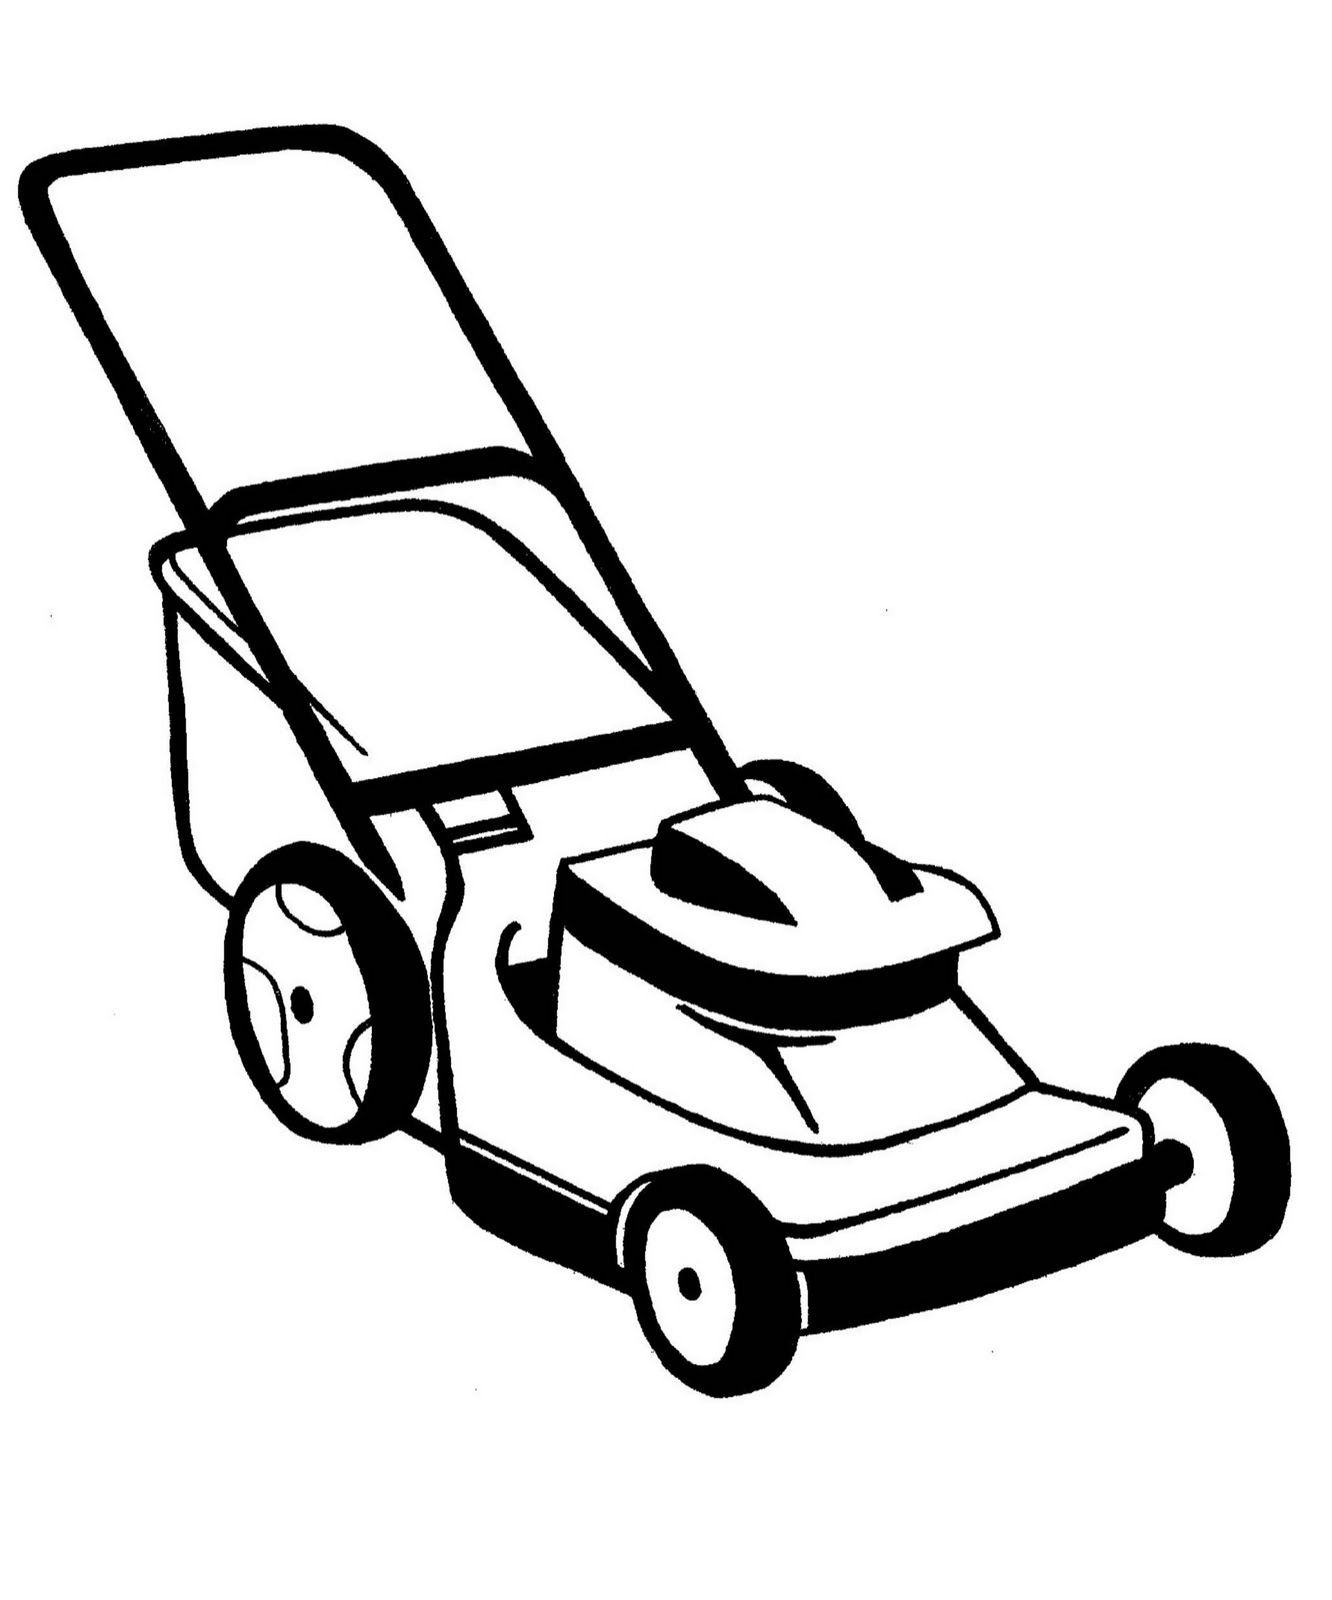 best lawn mower clipart 15198 clipartion com free lawn mower clipart download Lawn Clip Art Free